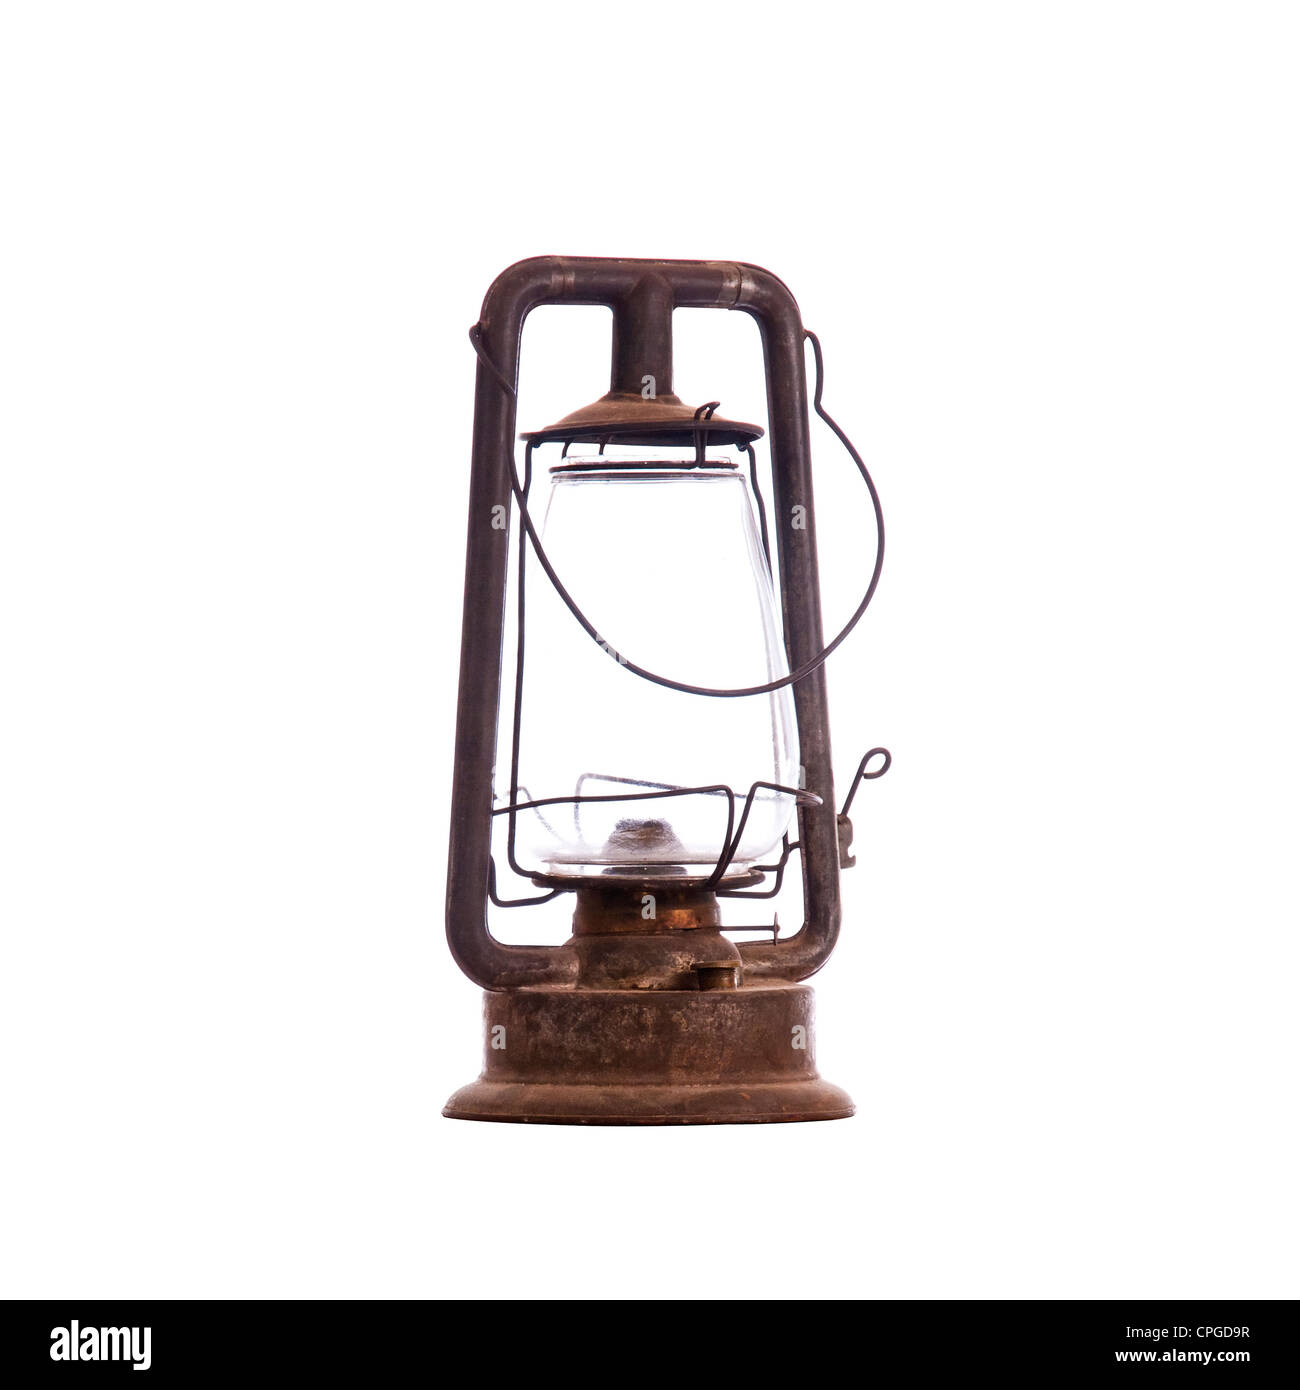 Old antique kerosene lantern isolated on white with a compound clipping path - Stock Image